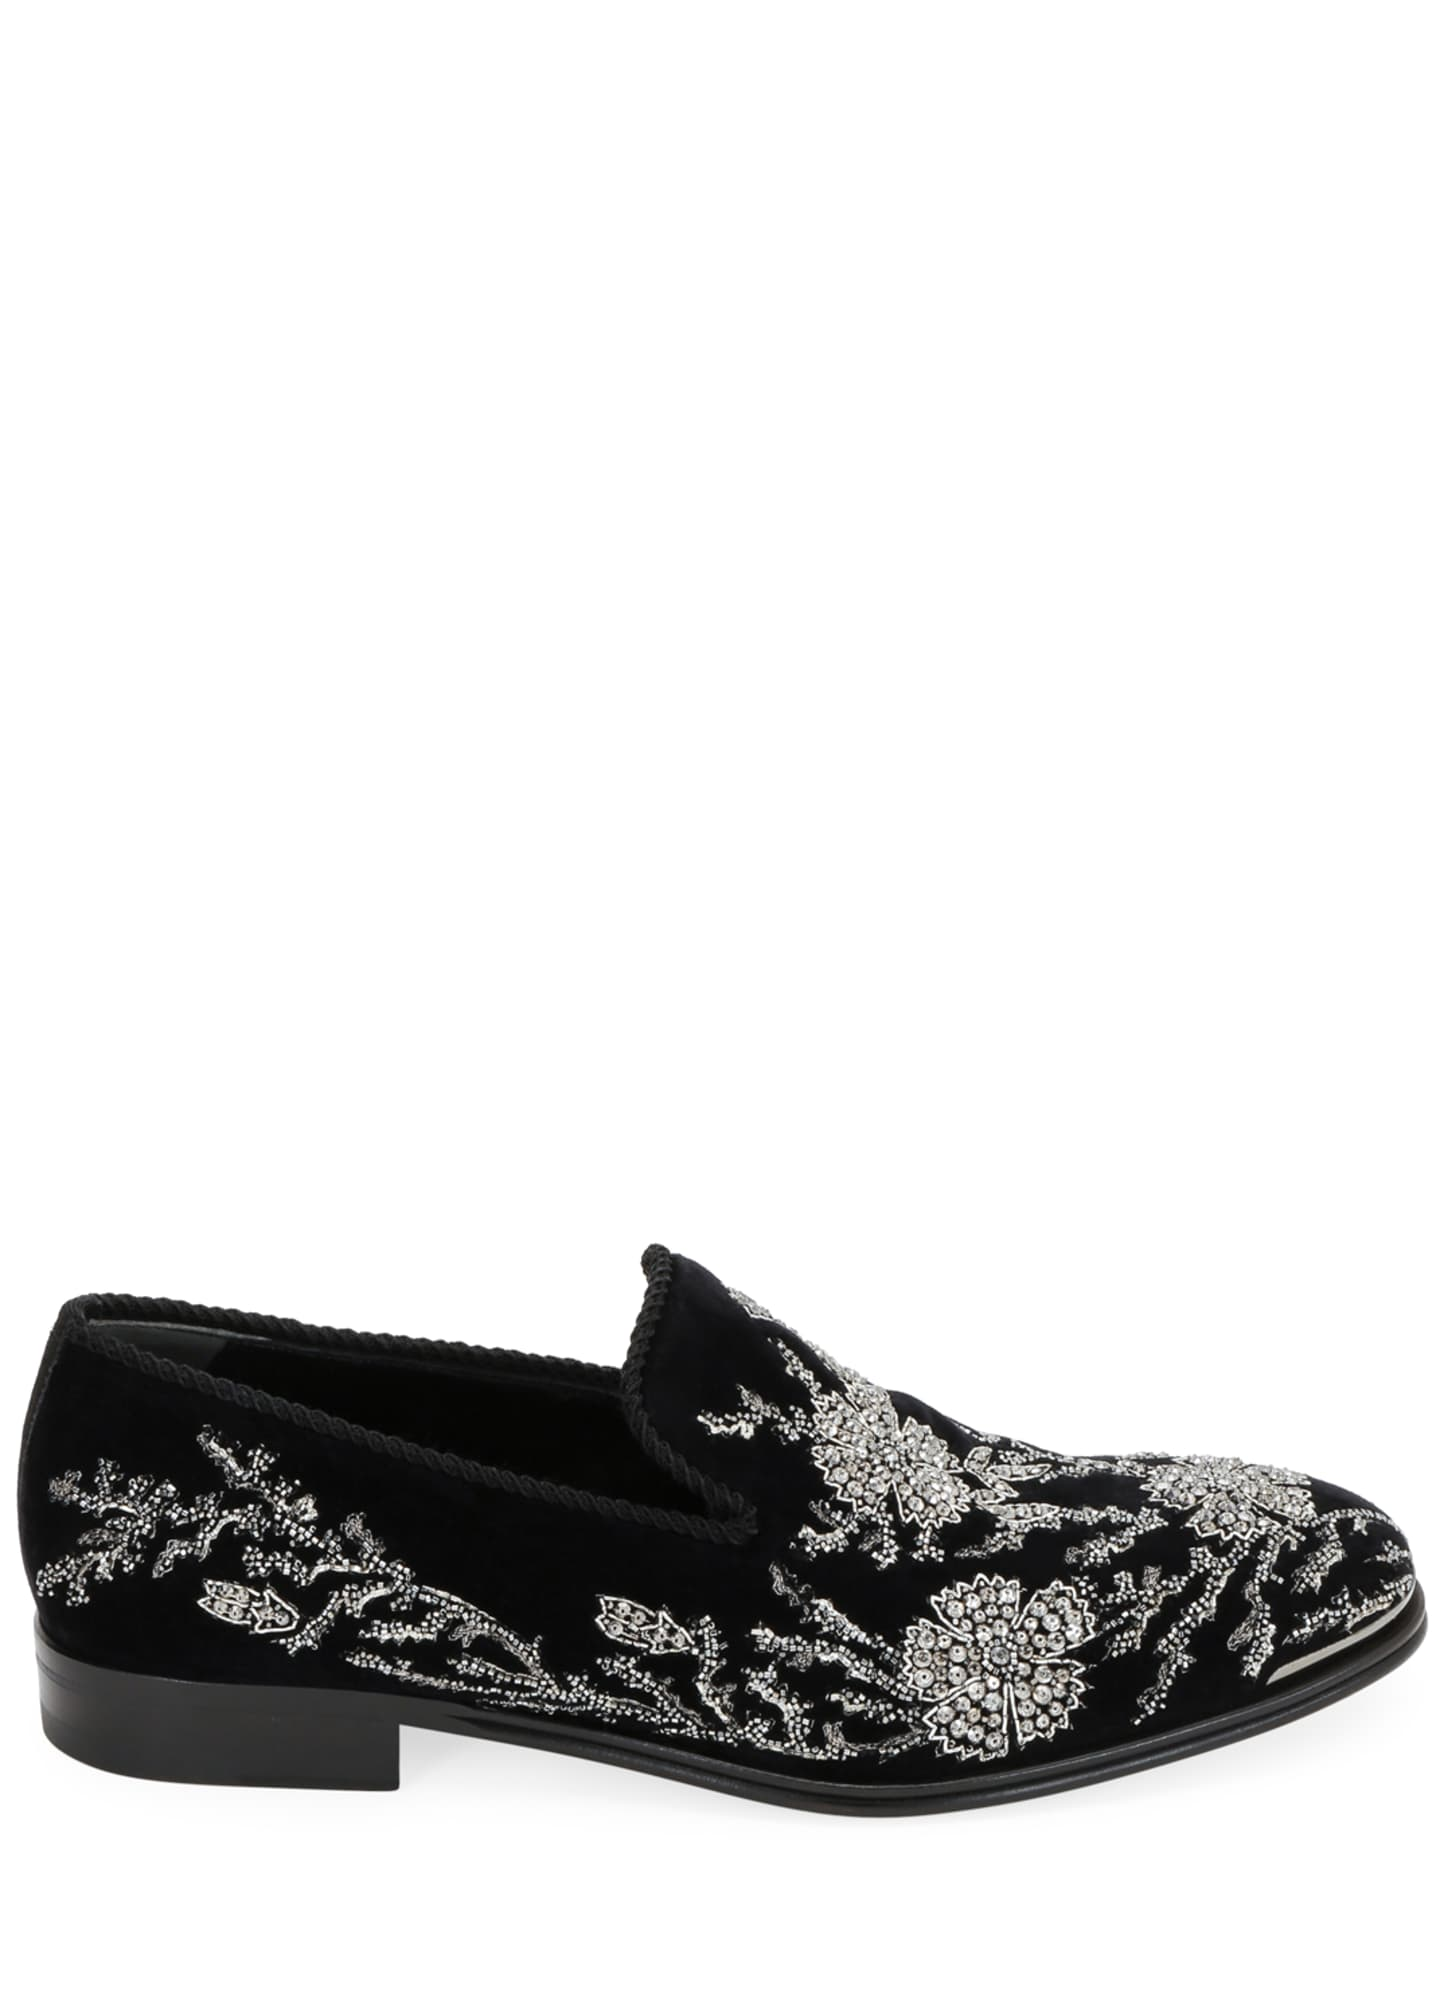 Image 2 of 4: Men's Embellished Velvet Formal Slip-Ons